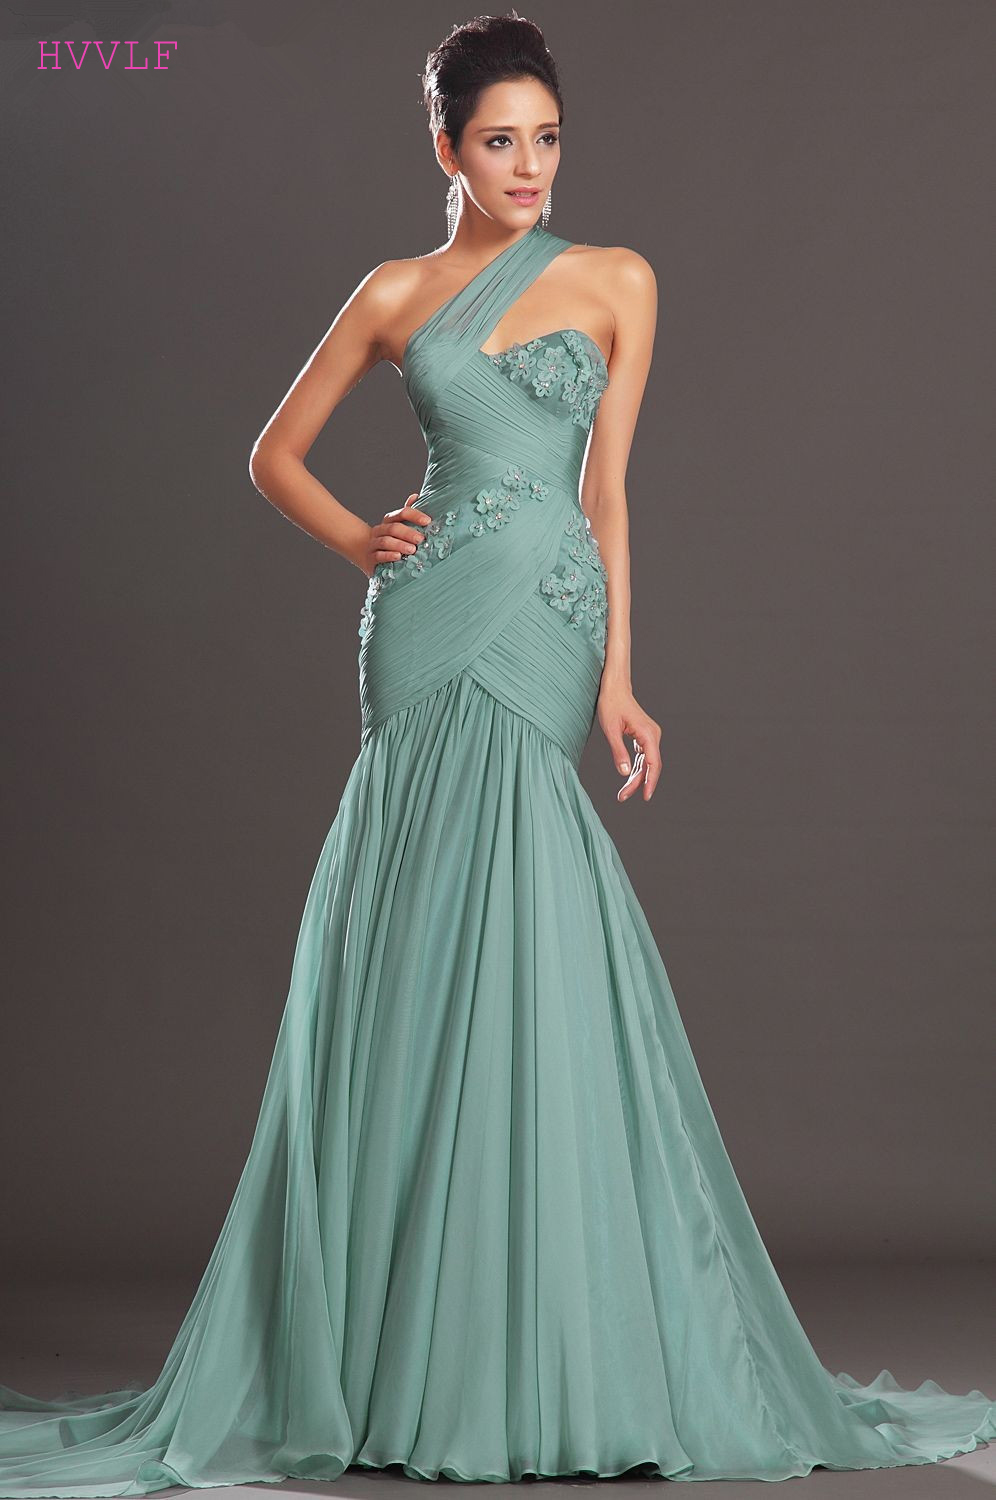 Blue Evening Dresses 2019 Mermaid One shoulder Chiffon Beaded Flowers Backless Long Evening Gown Prom Dresses